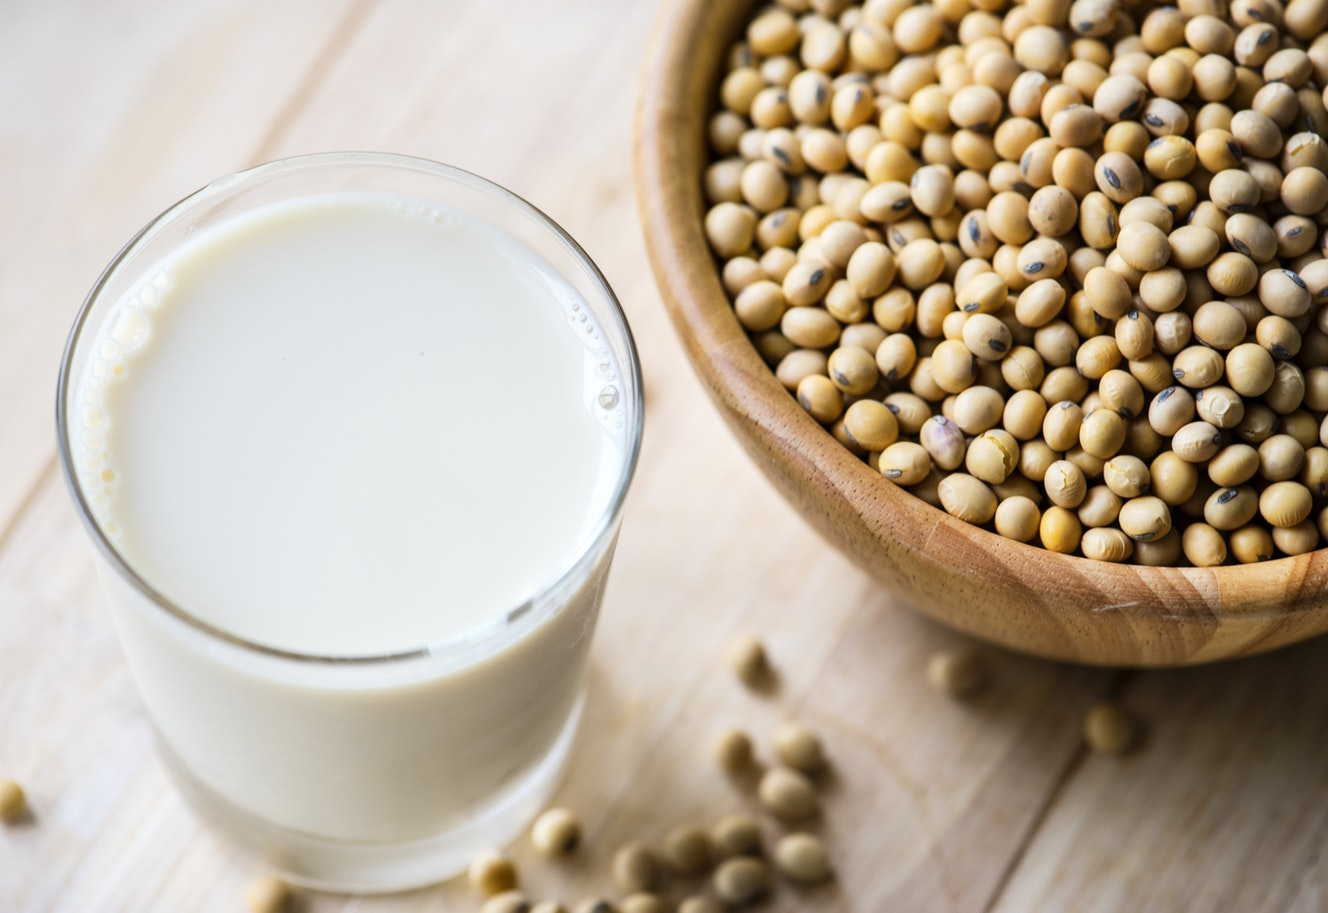 A glass of milk is incredibly important as it is full of vitamin D and Calcium